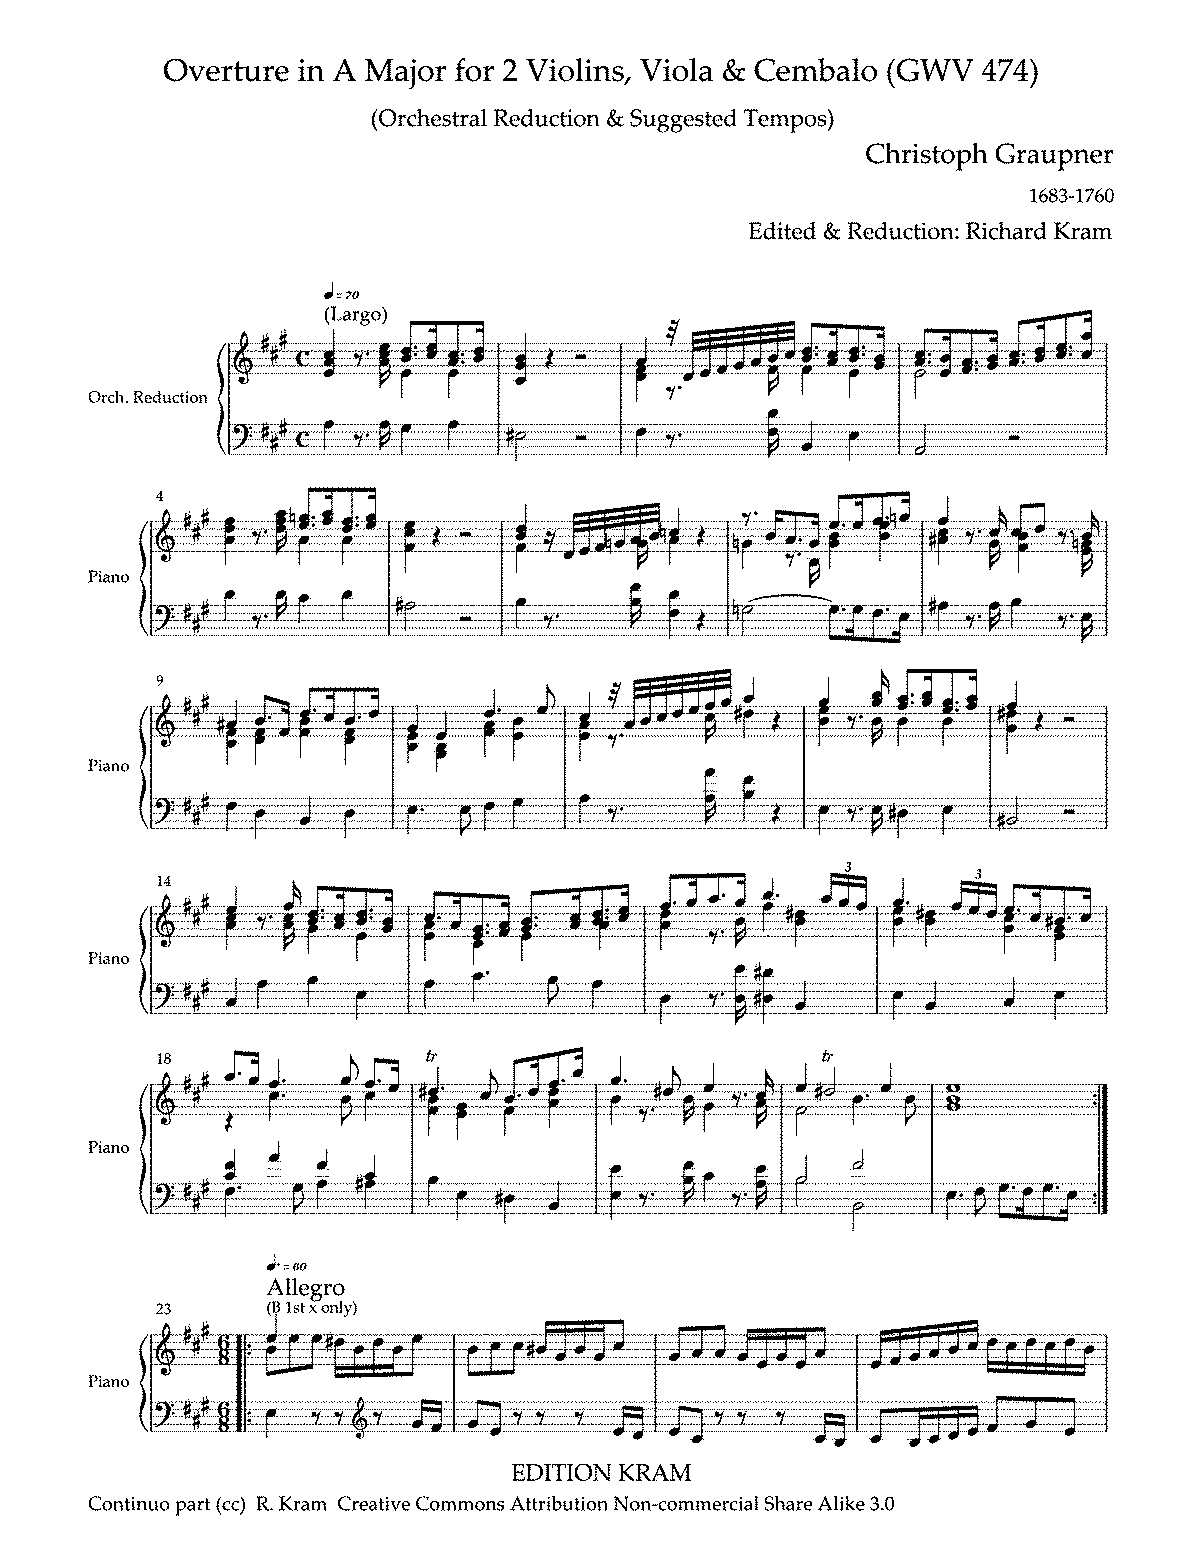 PMLP170523-Graupner Overture in A GWV 474 Piano Version.pdf